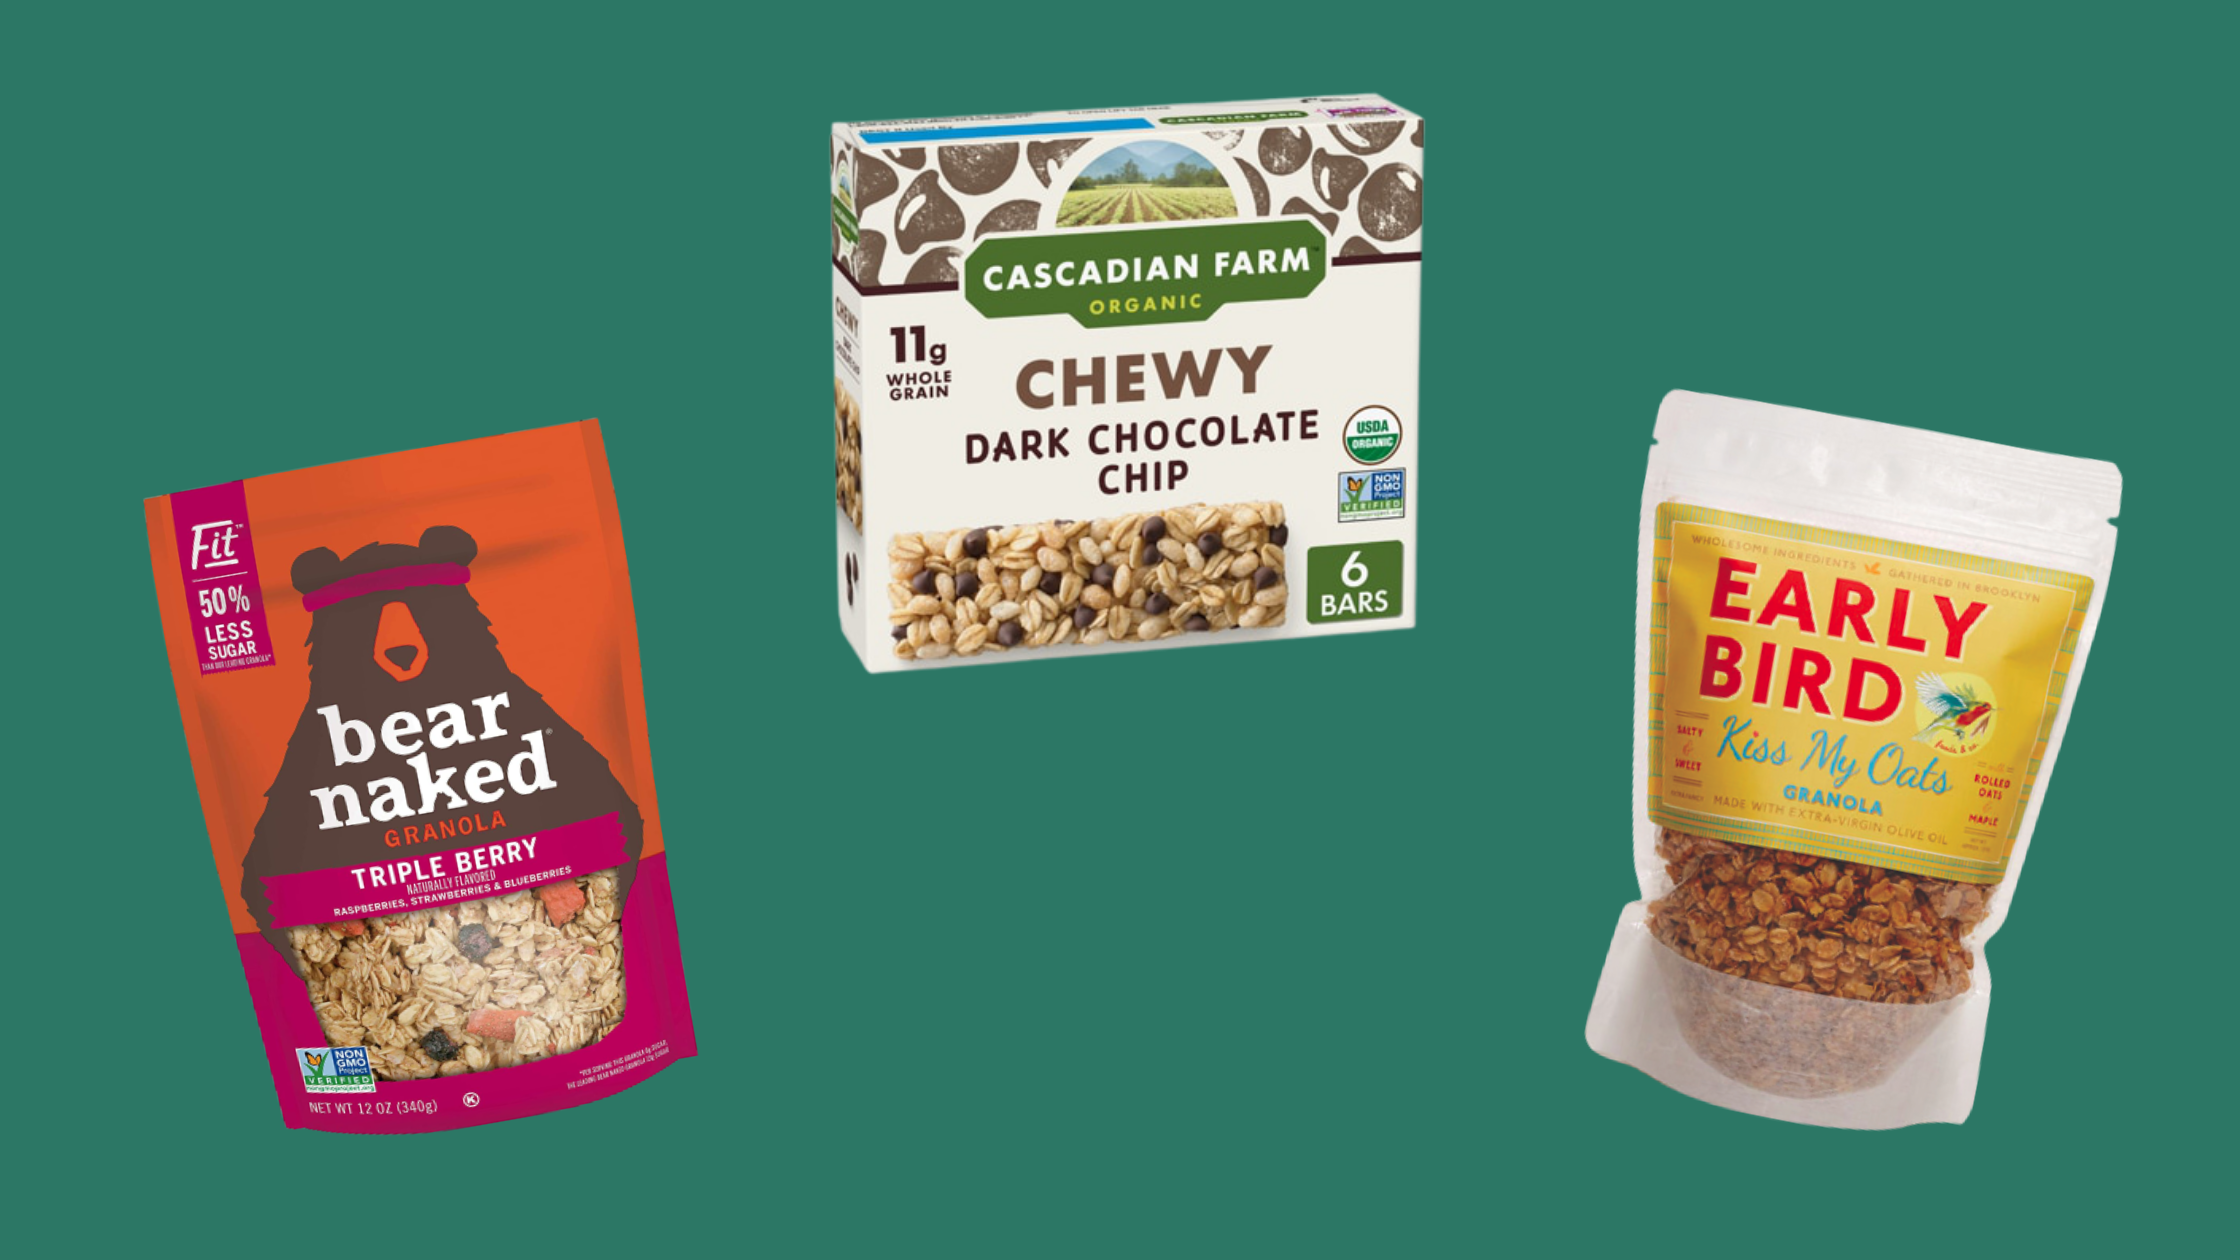 13 Nut-Free Granola Brands To Add To Your Snack Bag